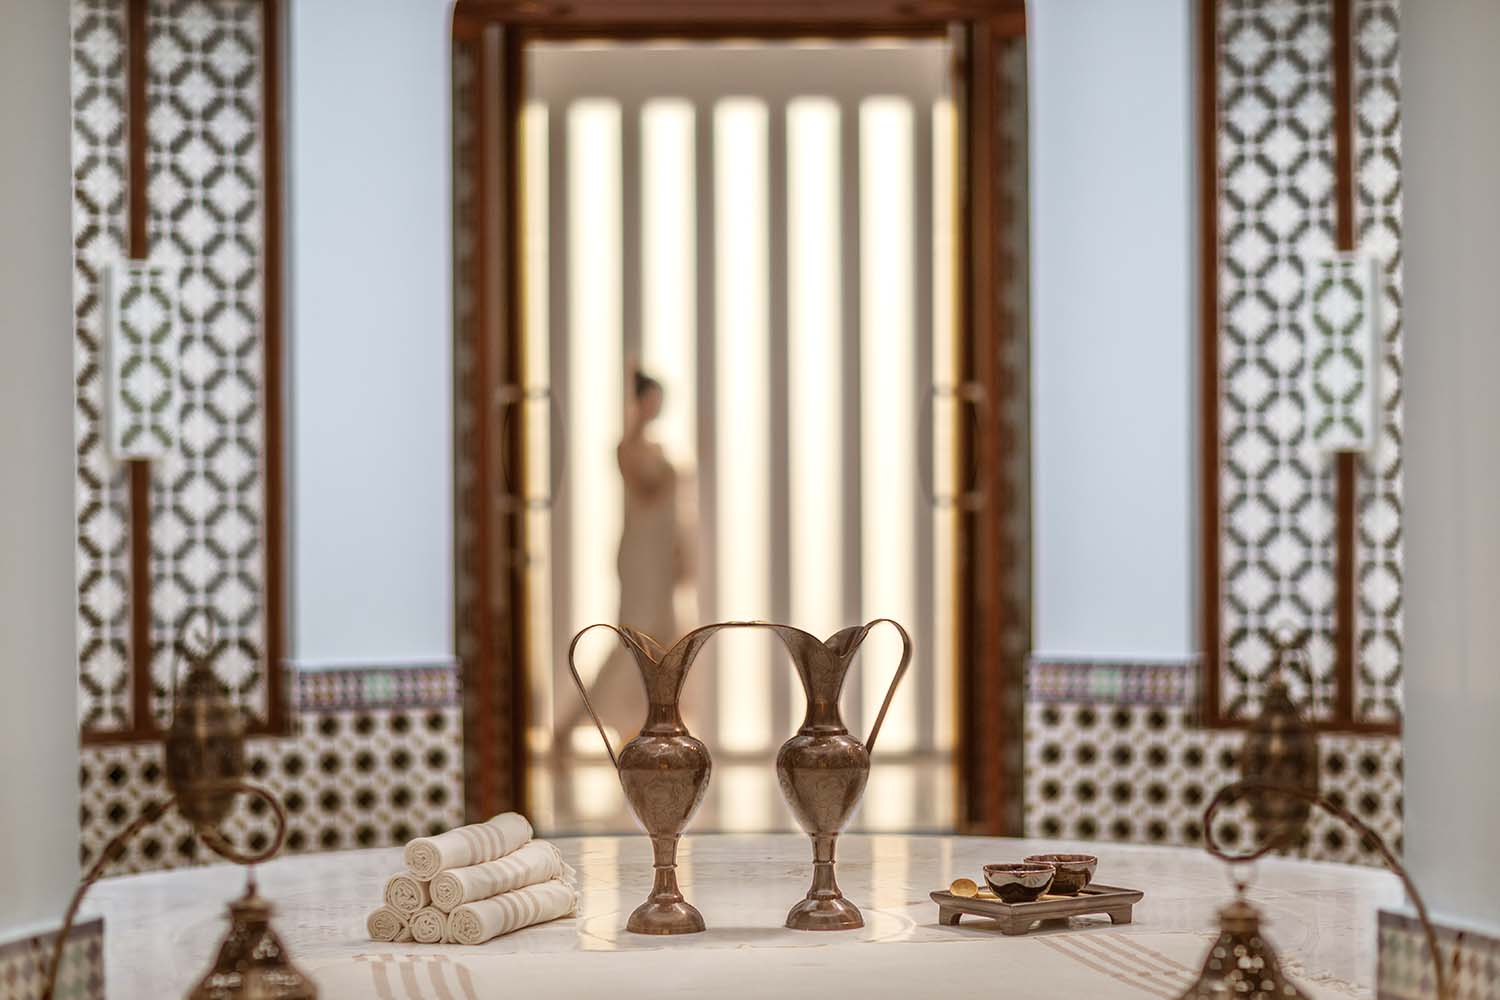 The spa has the only luxury hammam in the area.